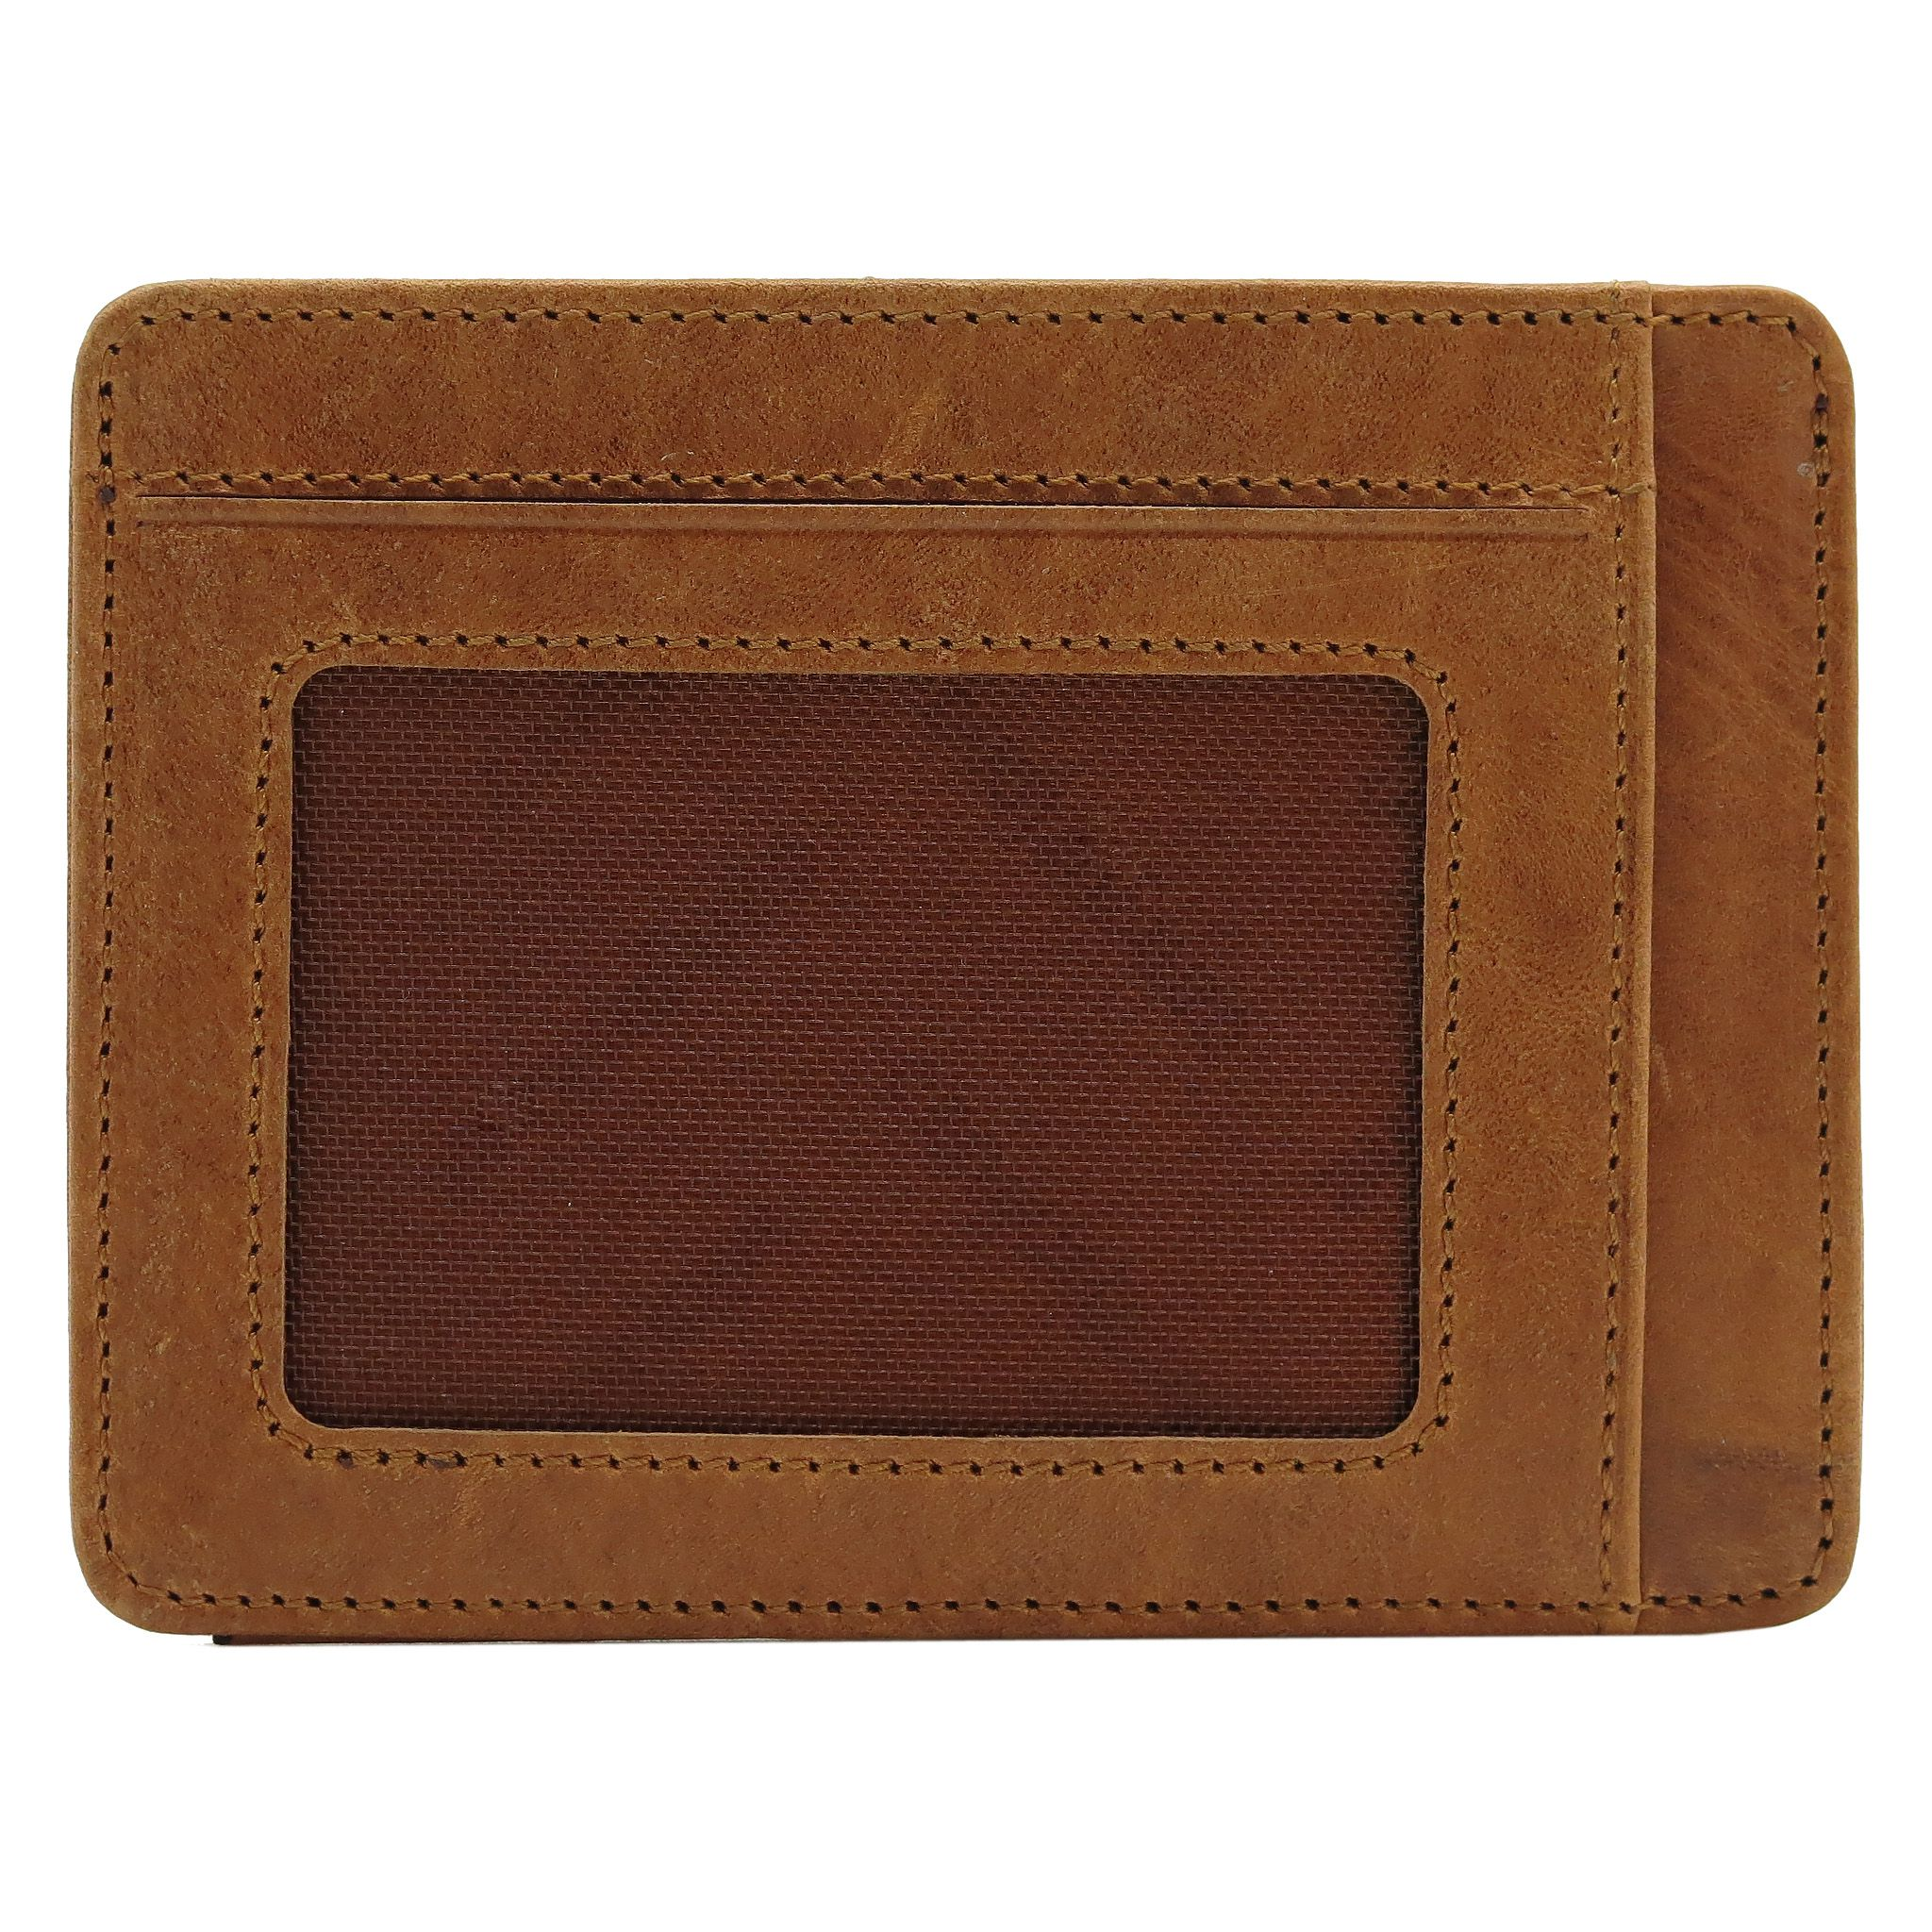 brown accessories handmade leather